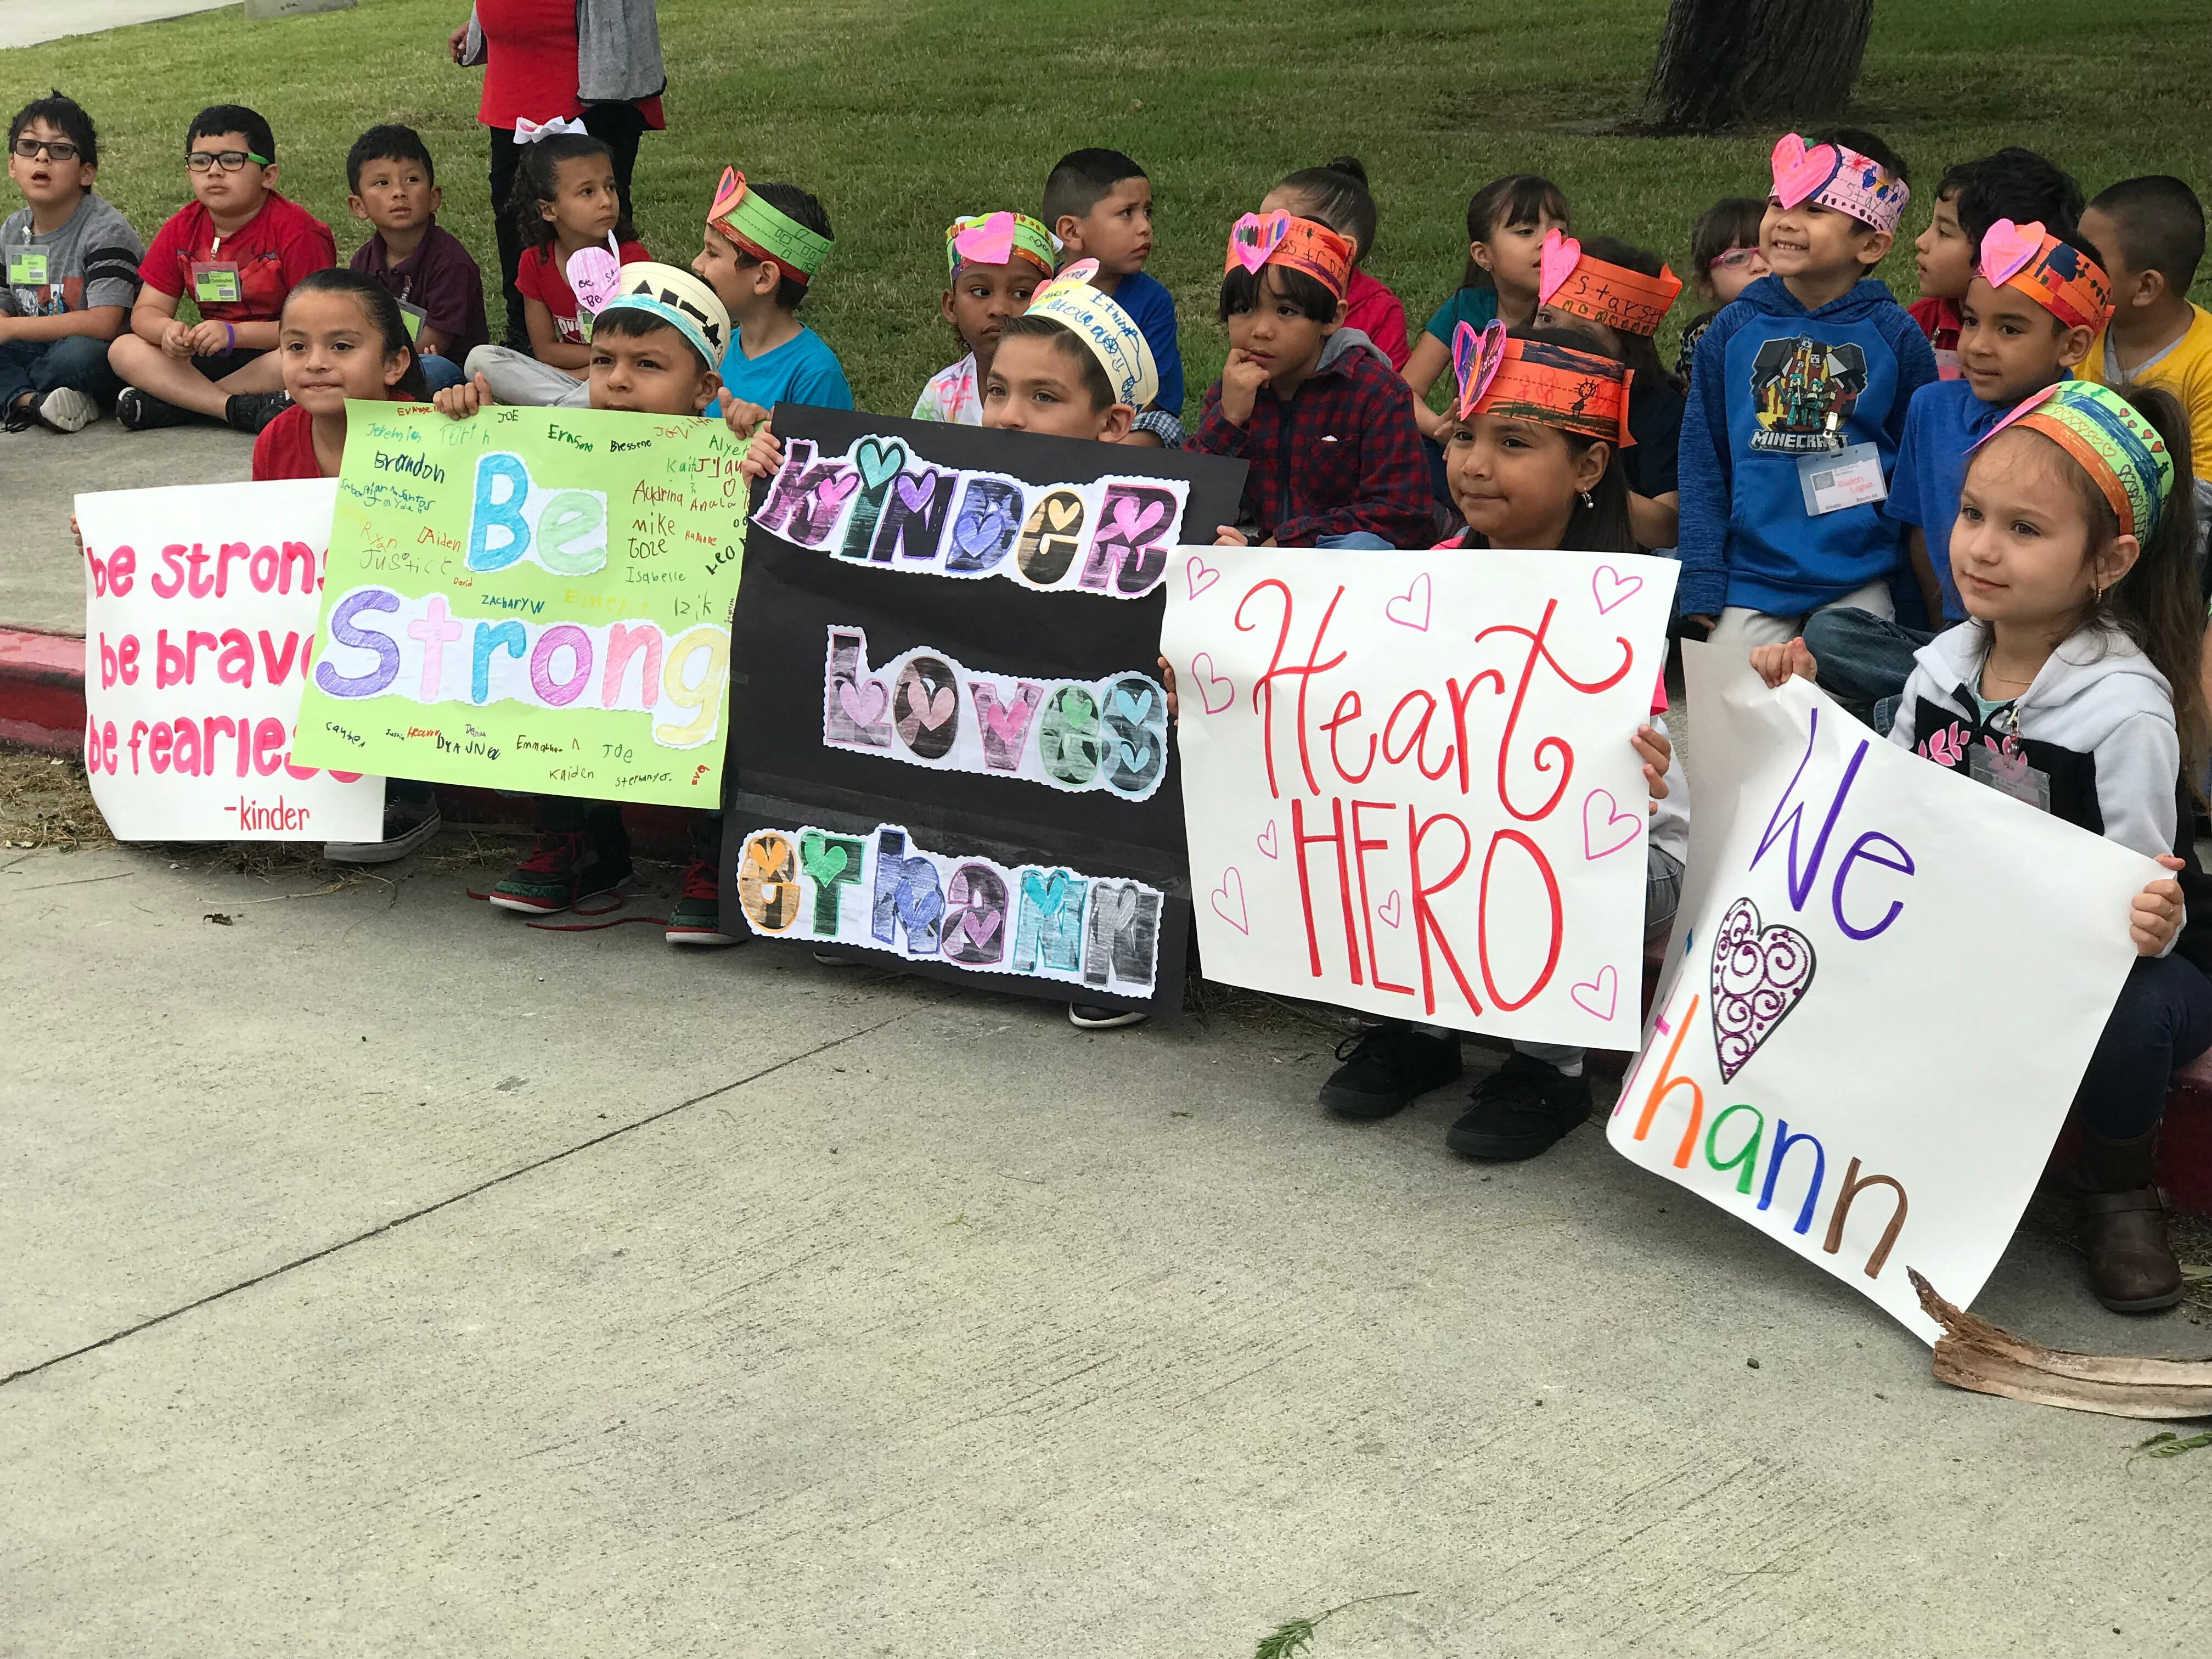 Kindergarten students from Garcia Elementary hold posters during a parade for Ethann Valdez on April 17, 2019.